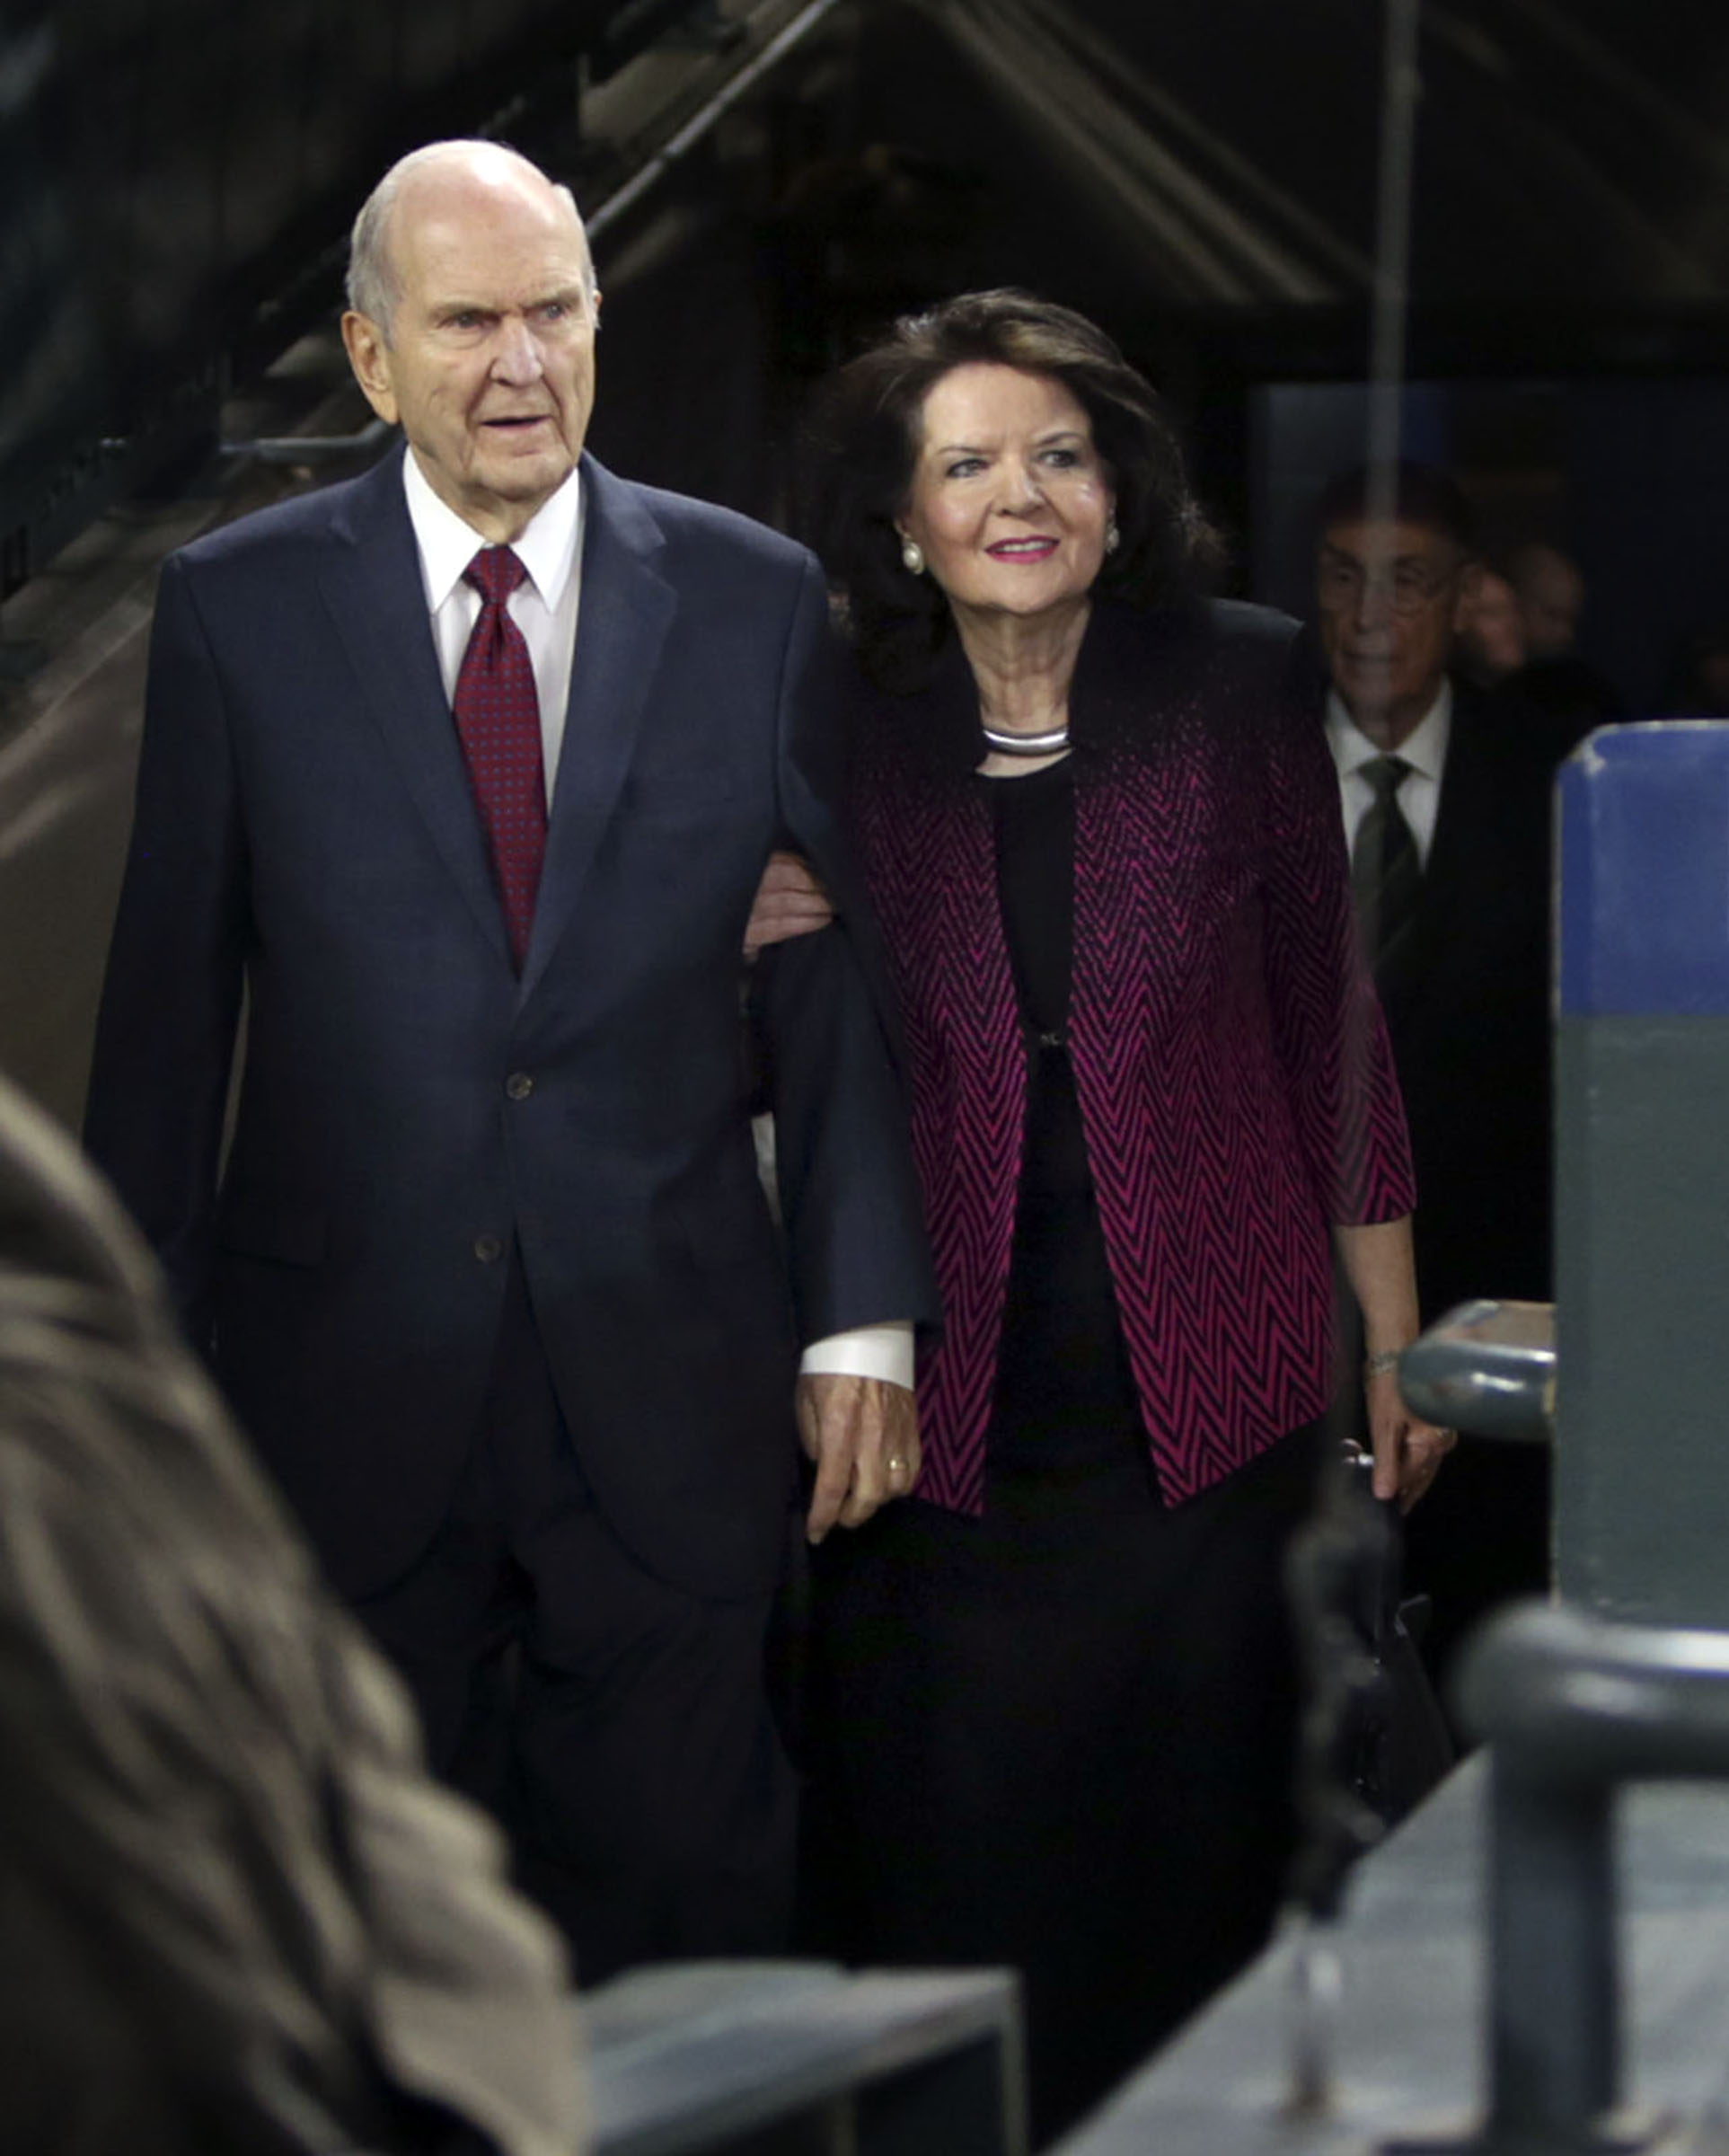 President Russell M. Nelson of The Church of Jesus Christ of Latter-day Saints and his wife, Sister Wendy Nelson, walk onto Safeco Field to speak to a crowd of more than 49,000 people in Seattle, Wash., on Saturday, Sept. 15, 2018.